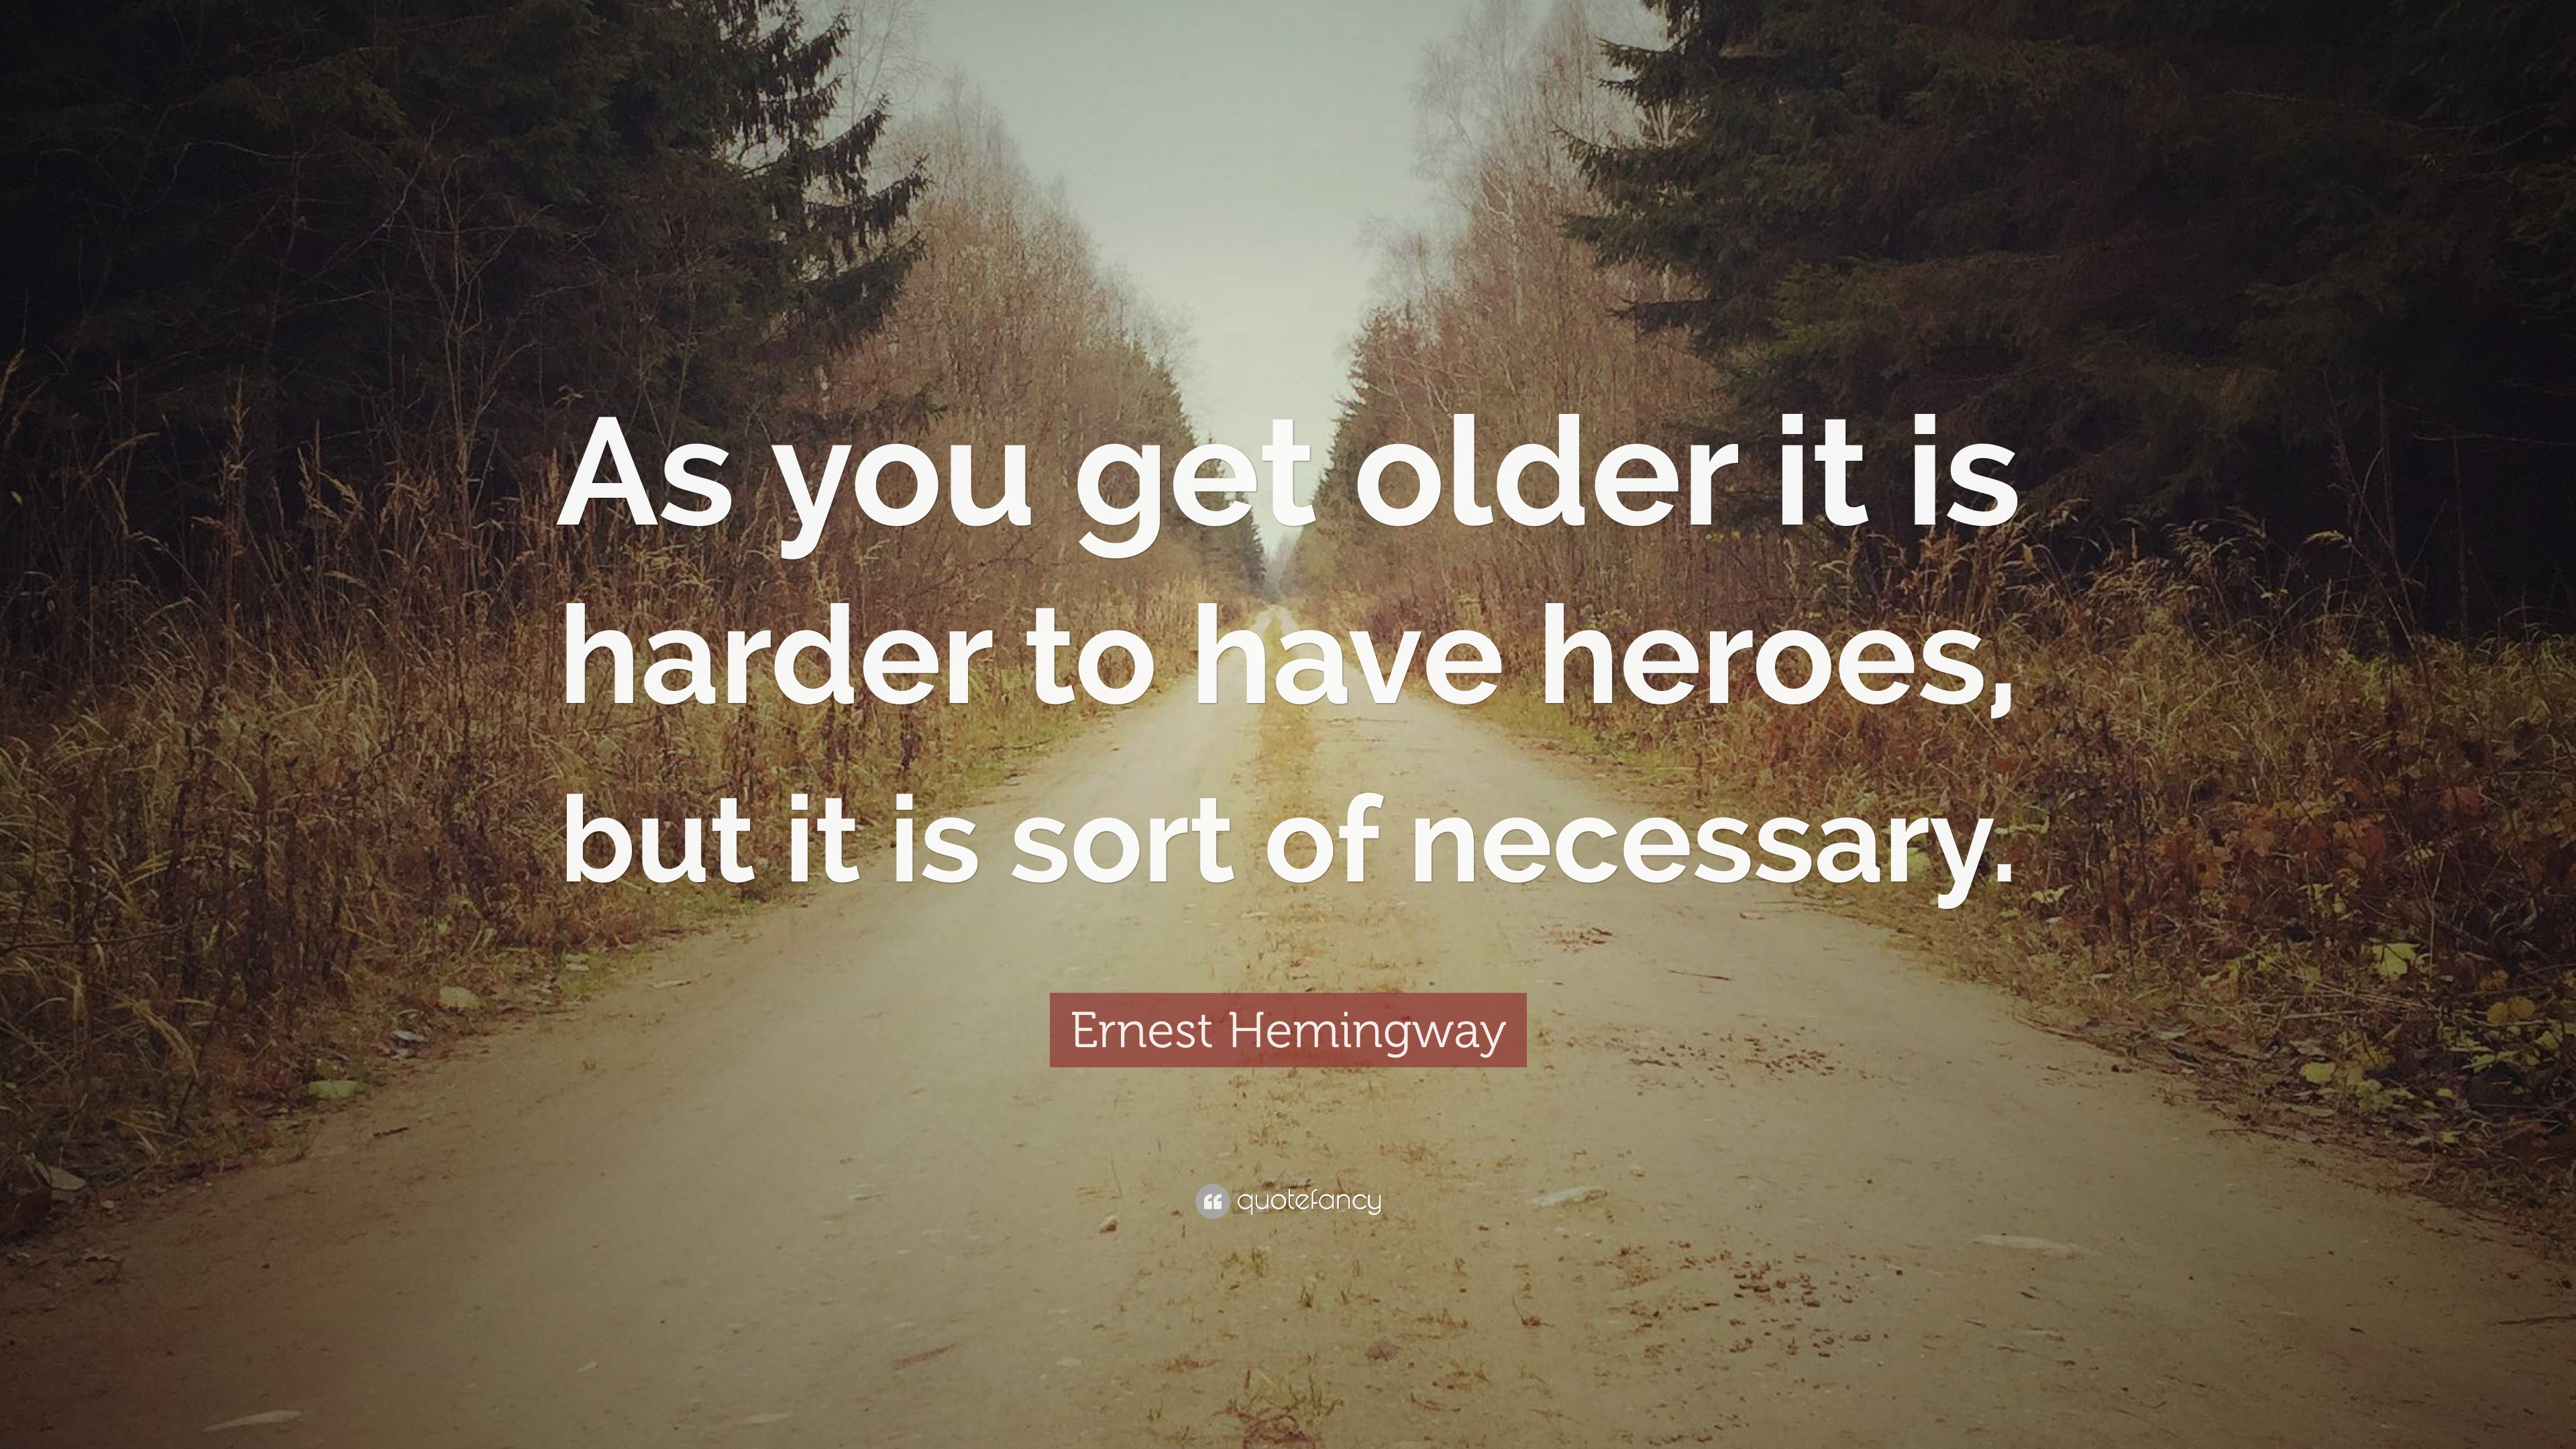 Ernest Hemingway Quote As You Get Older It Is Harder To Have